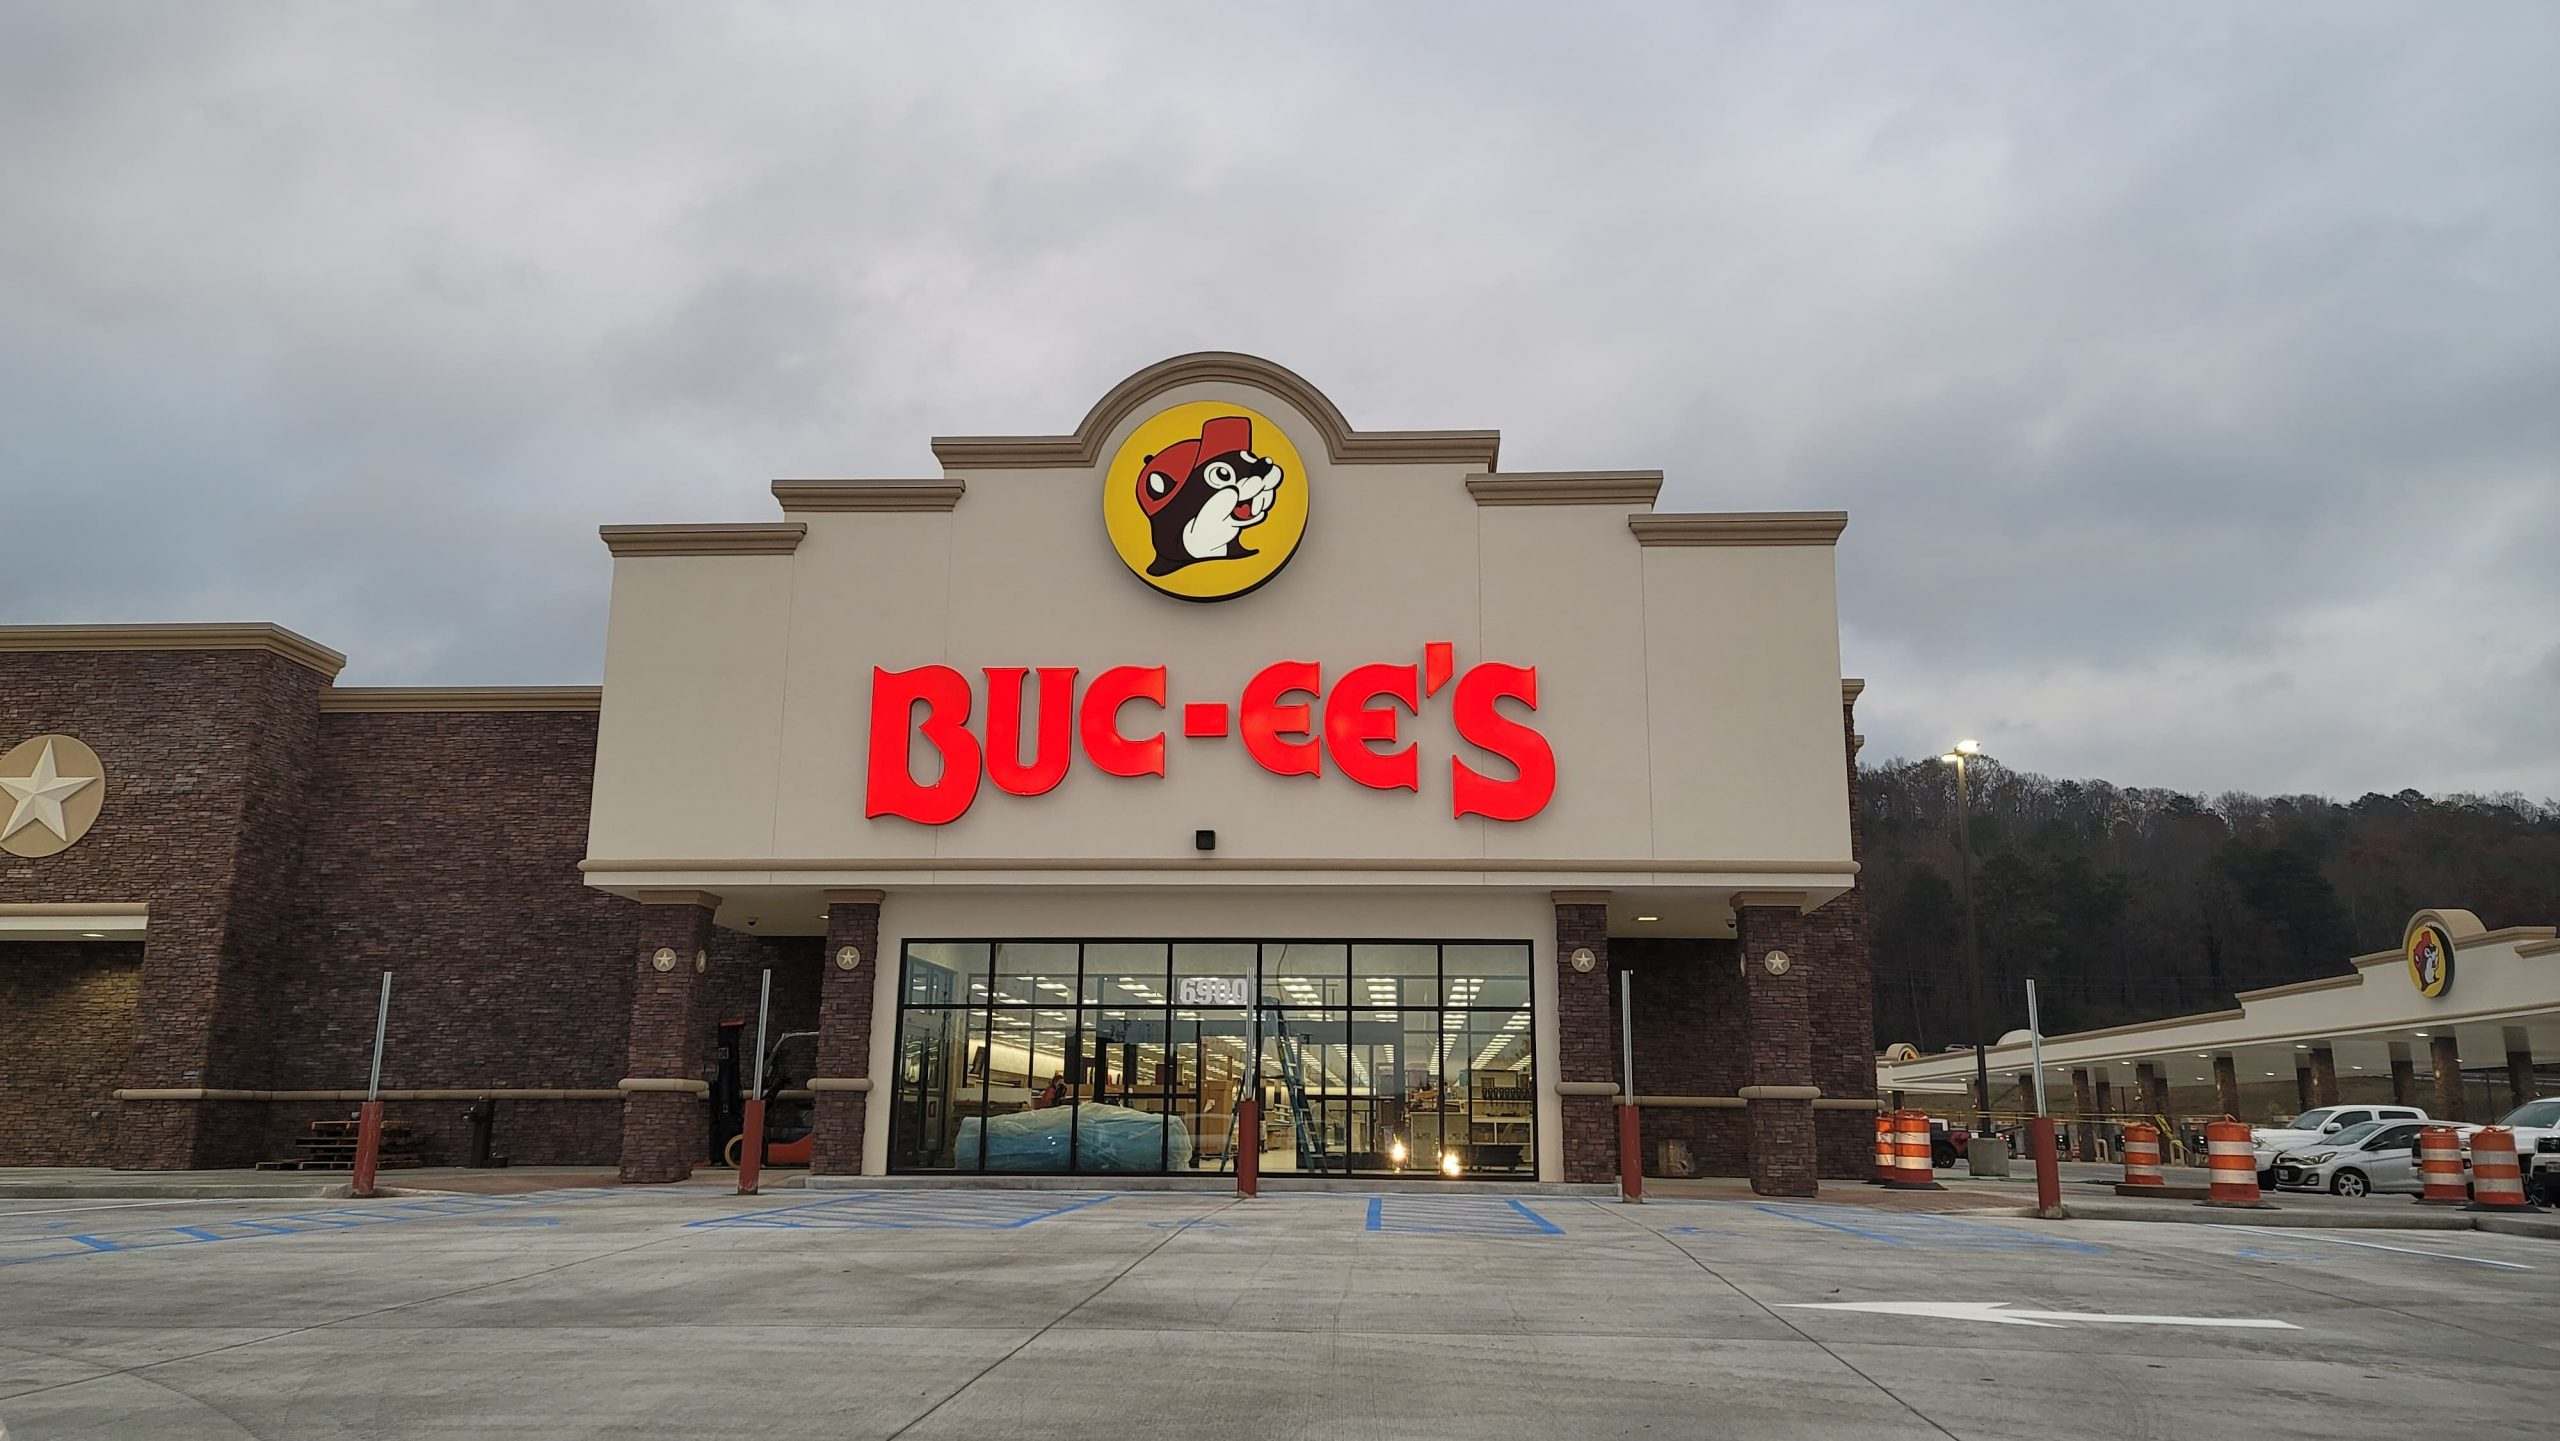 Leeds mayor announces Buc-ee's sales hit $10 million in first month